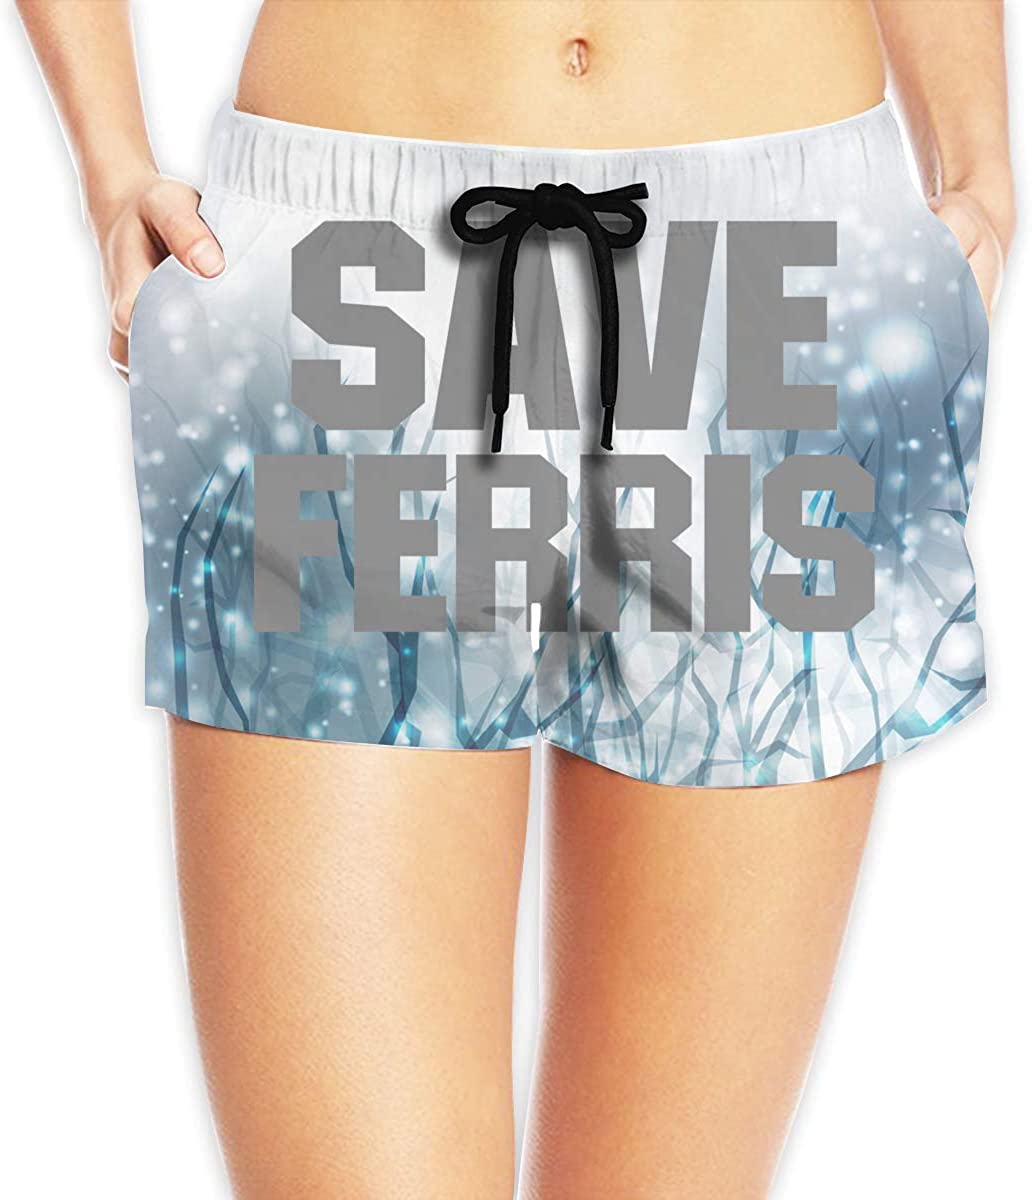 Save Ferris - Bueller - Support Day Off Womens Shorts Summer Quick Dry Drawstring Elastic Waist Casual Board Shorts